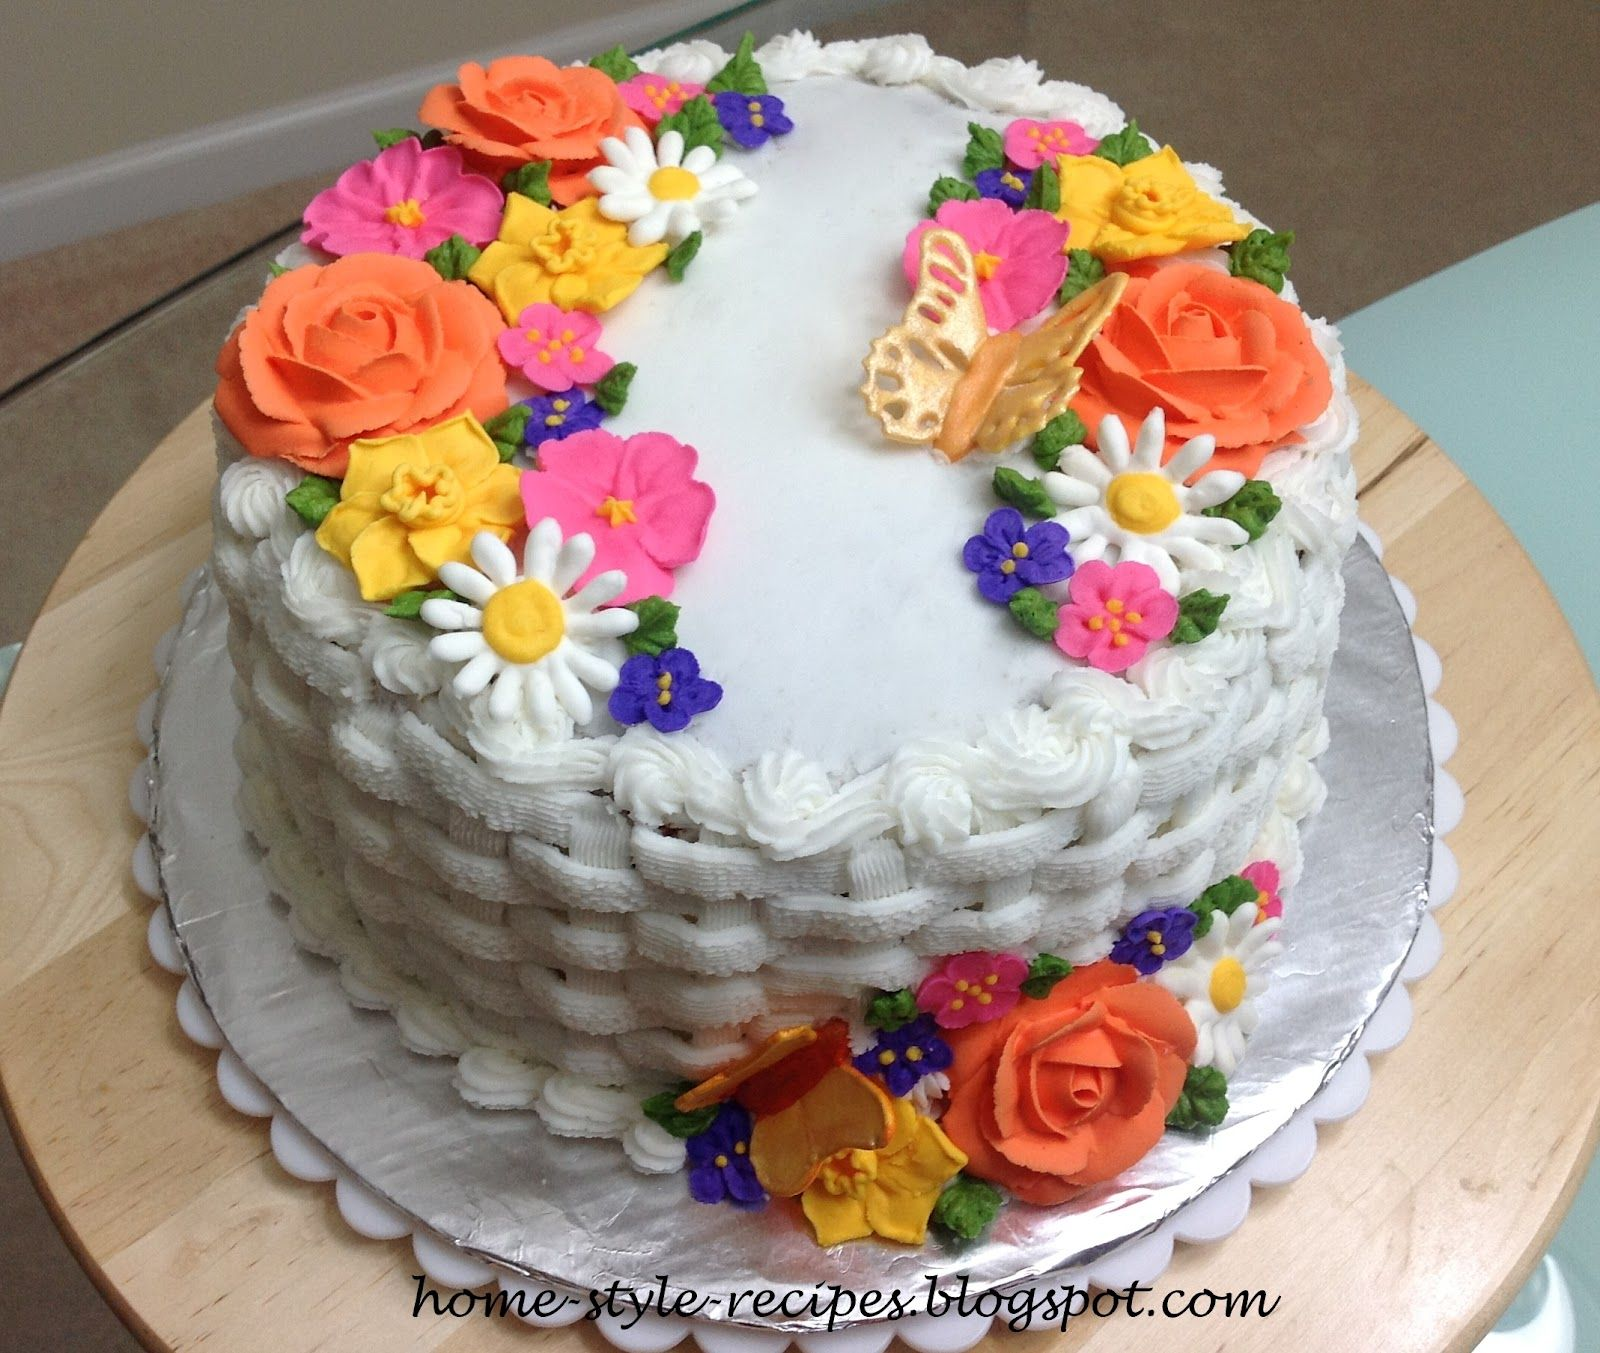 Wilton Flowers And Cake Home-style-recipes.blogspot.com